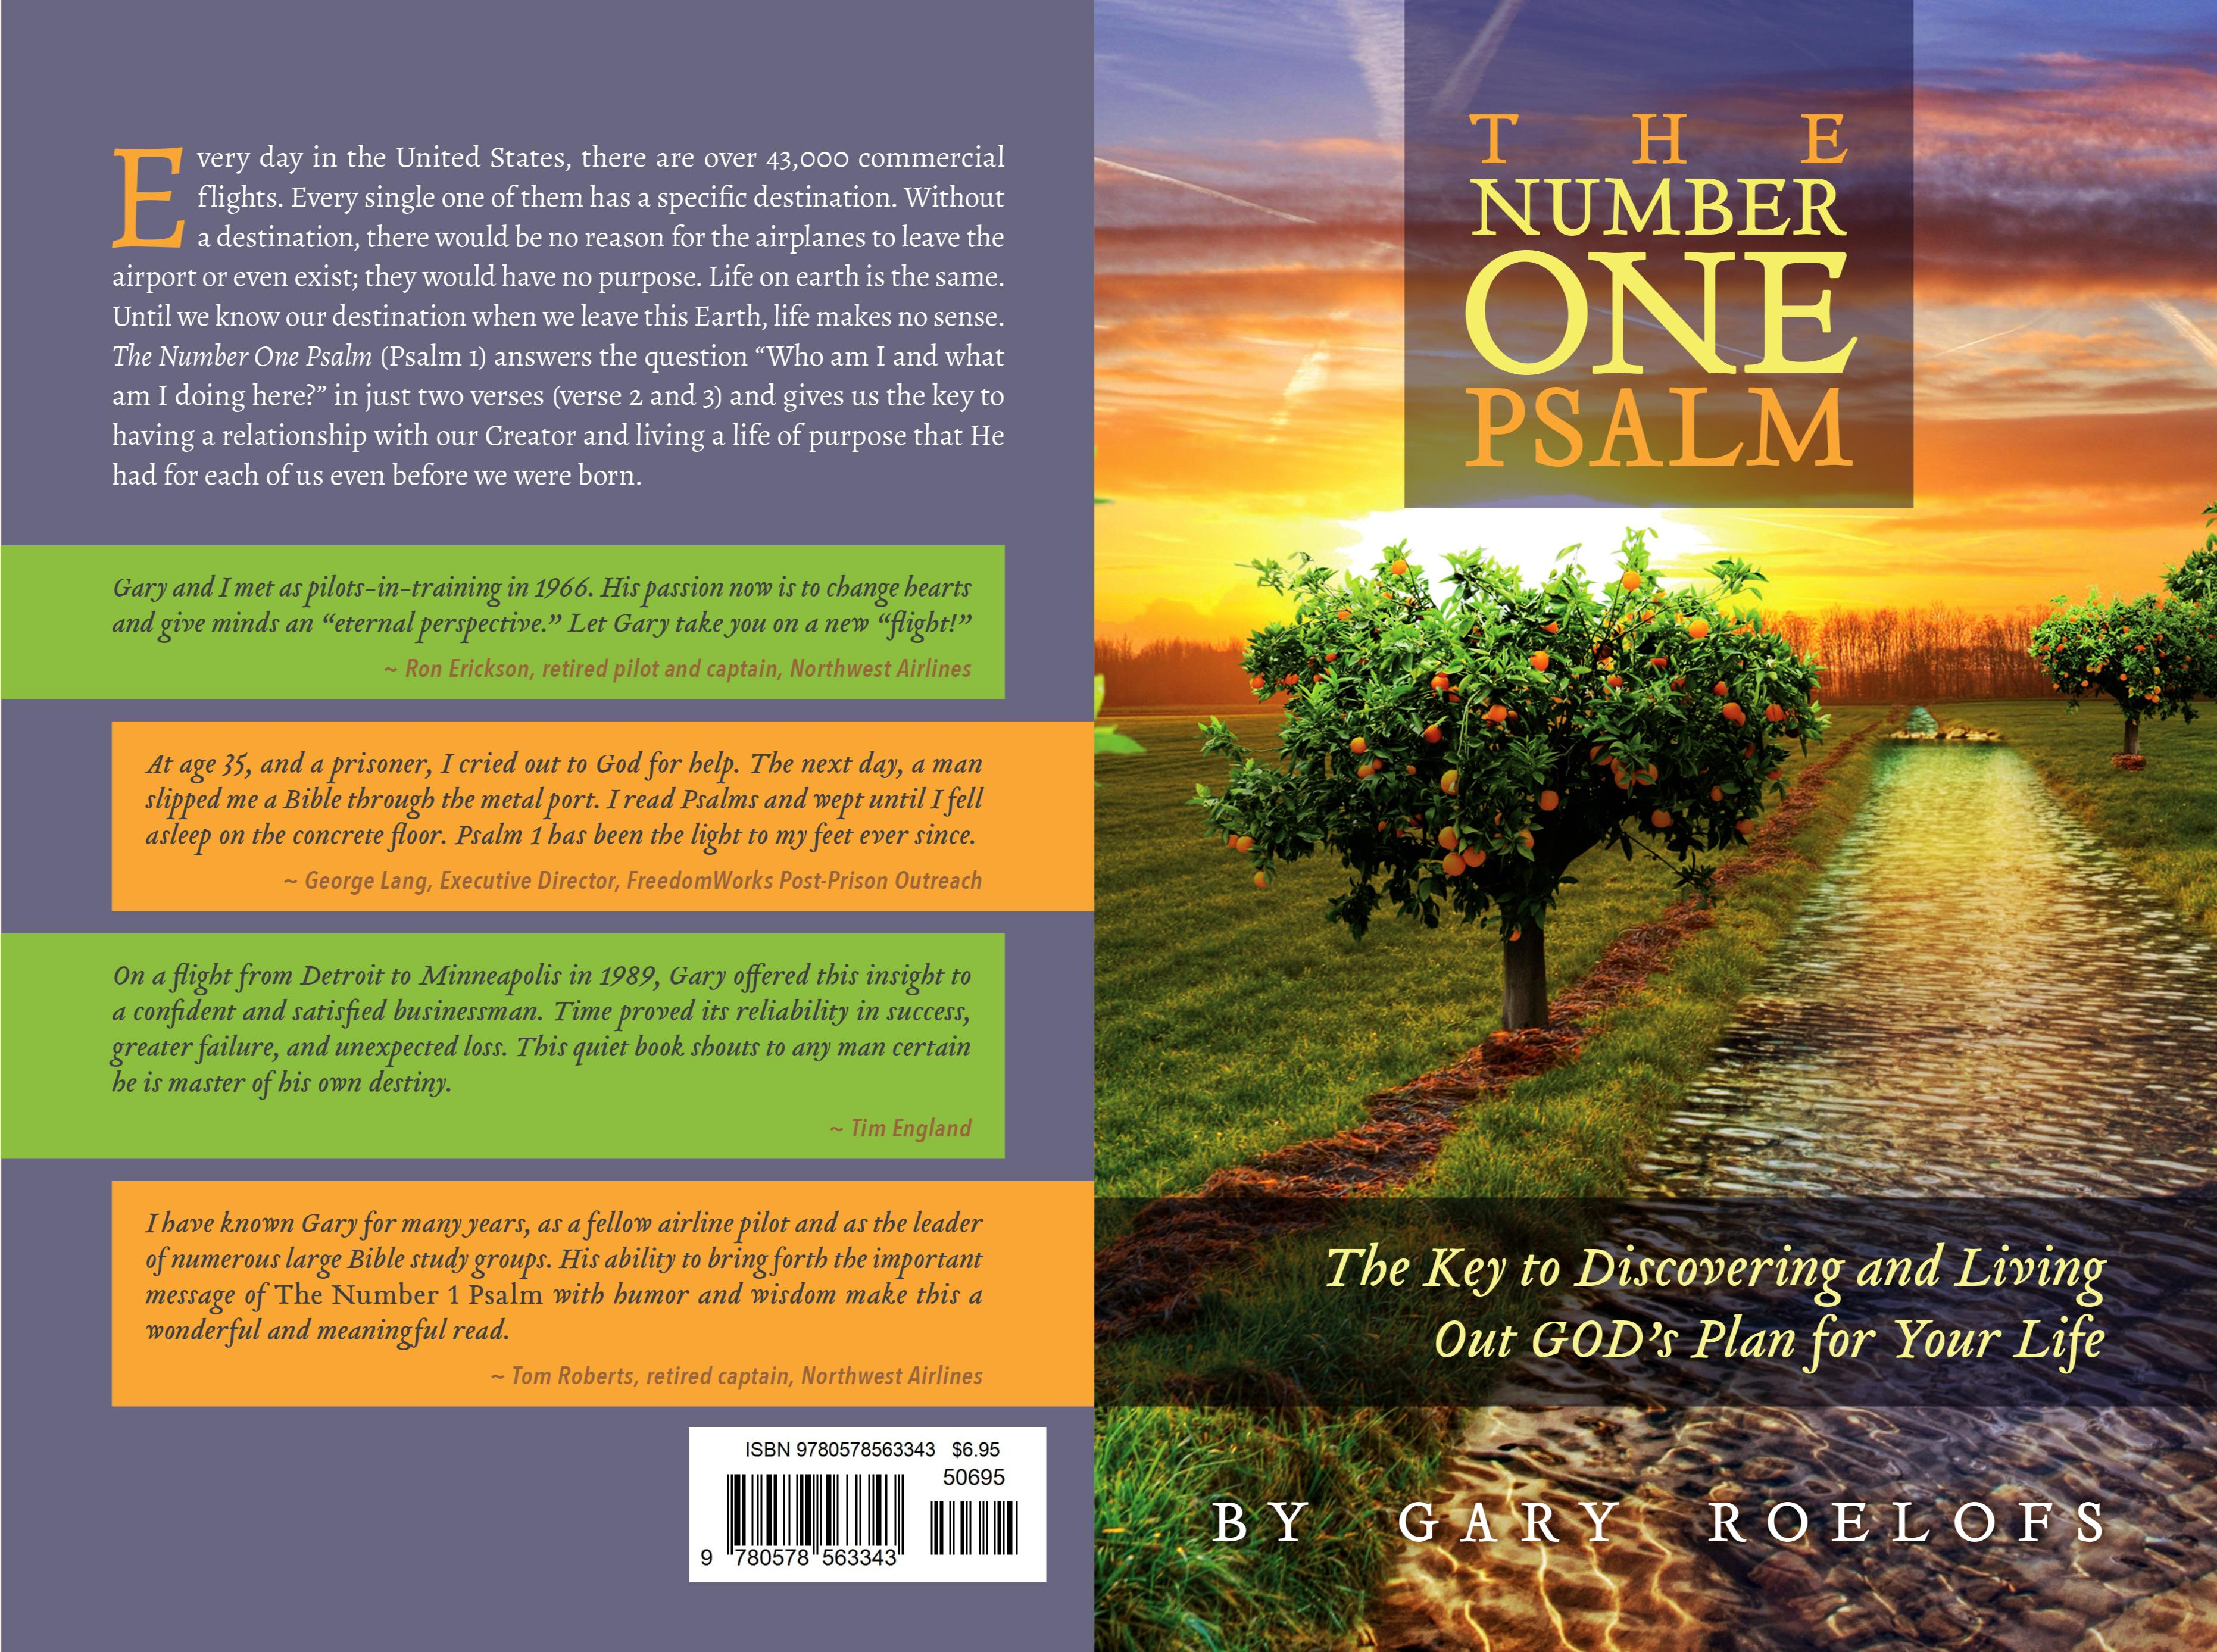 The Number ONE Psalm: The Key to Discovering and Living Out GOD's Plan for Your Life cover image